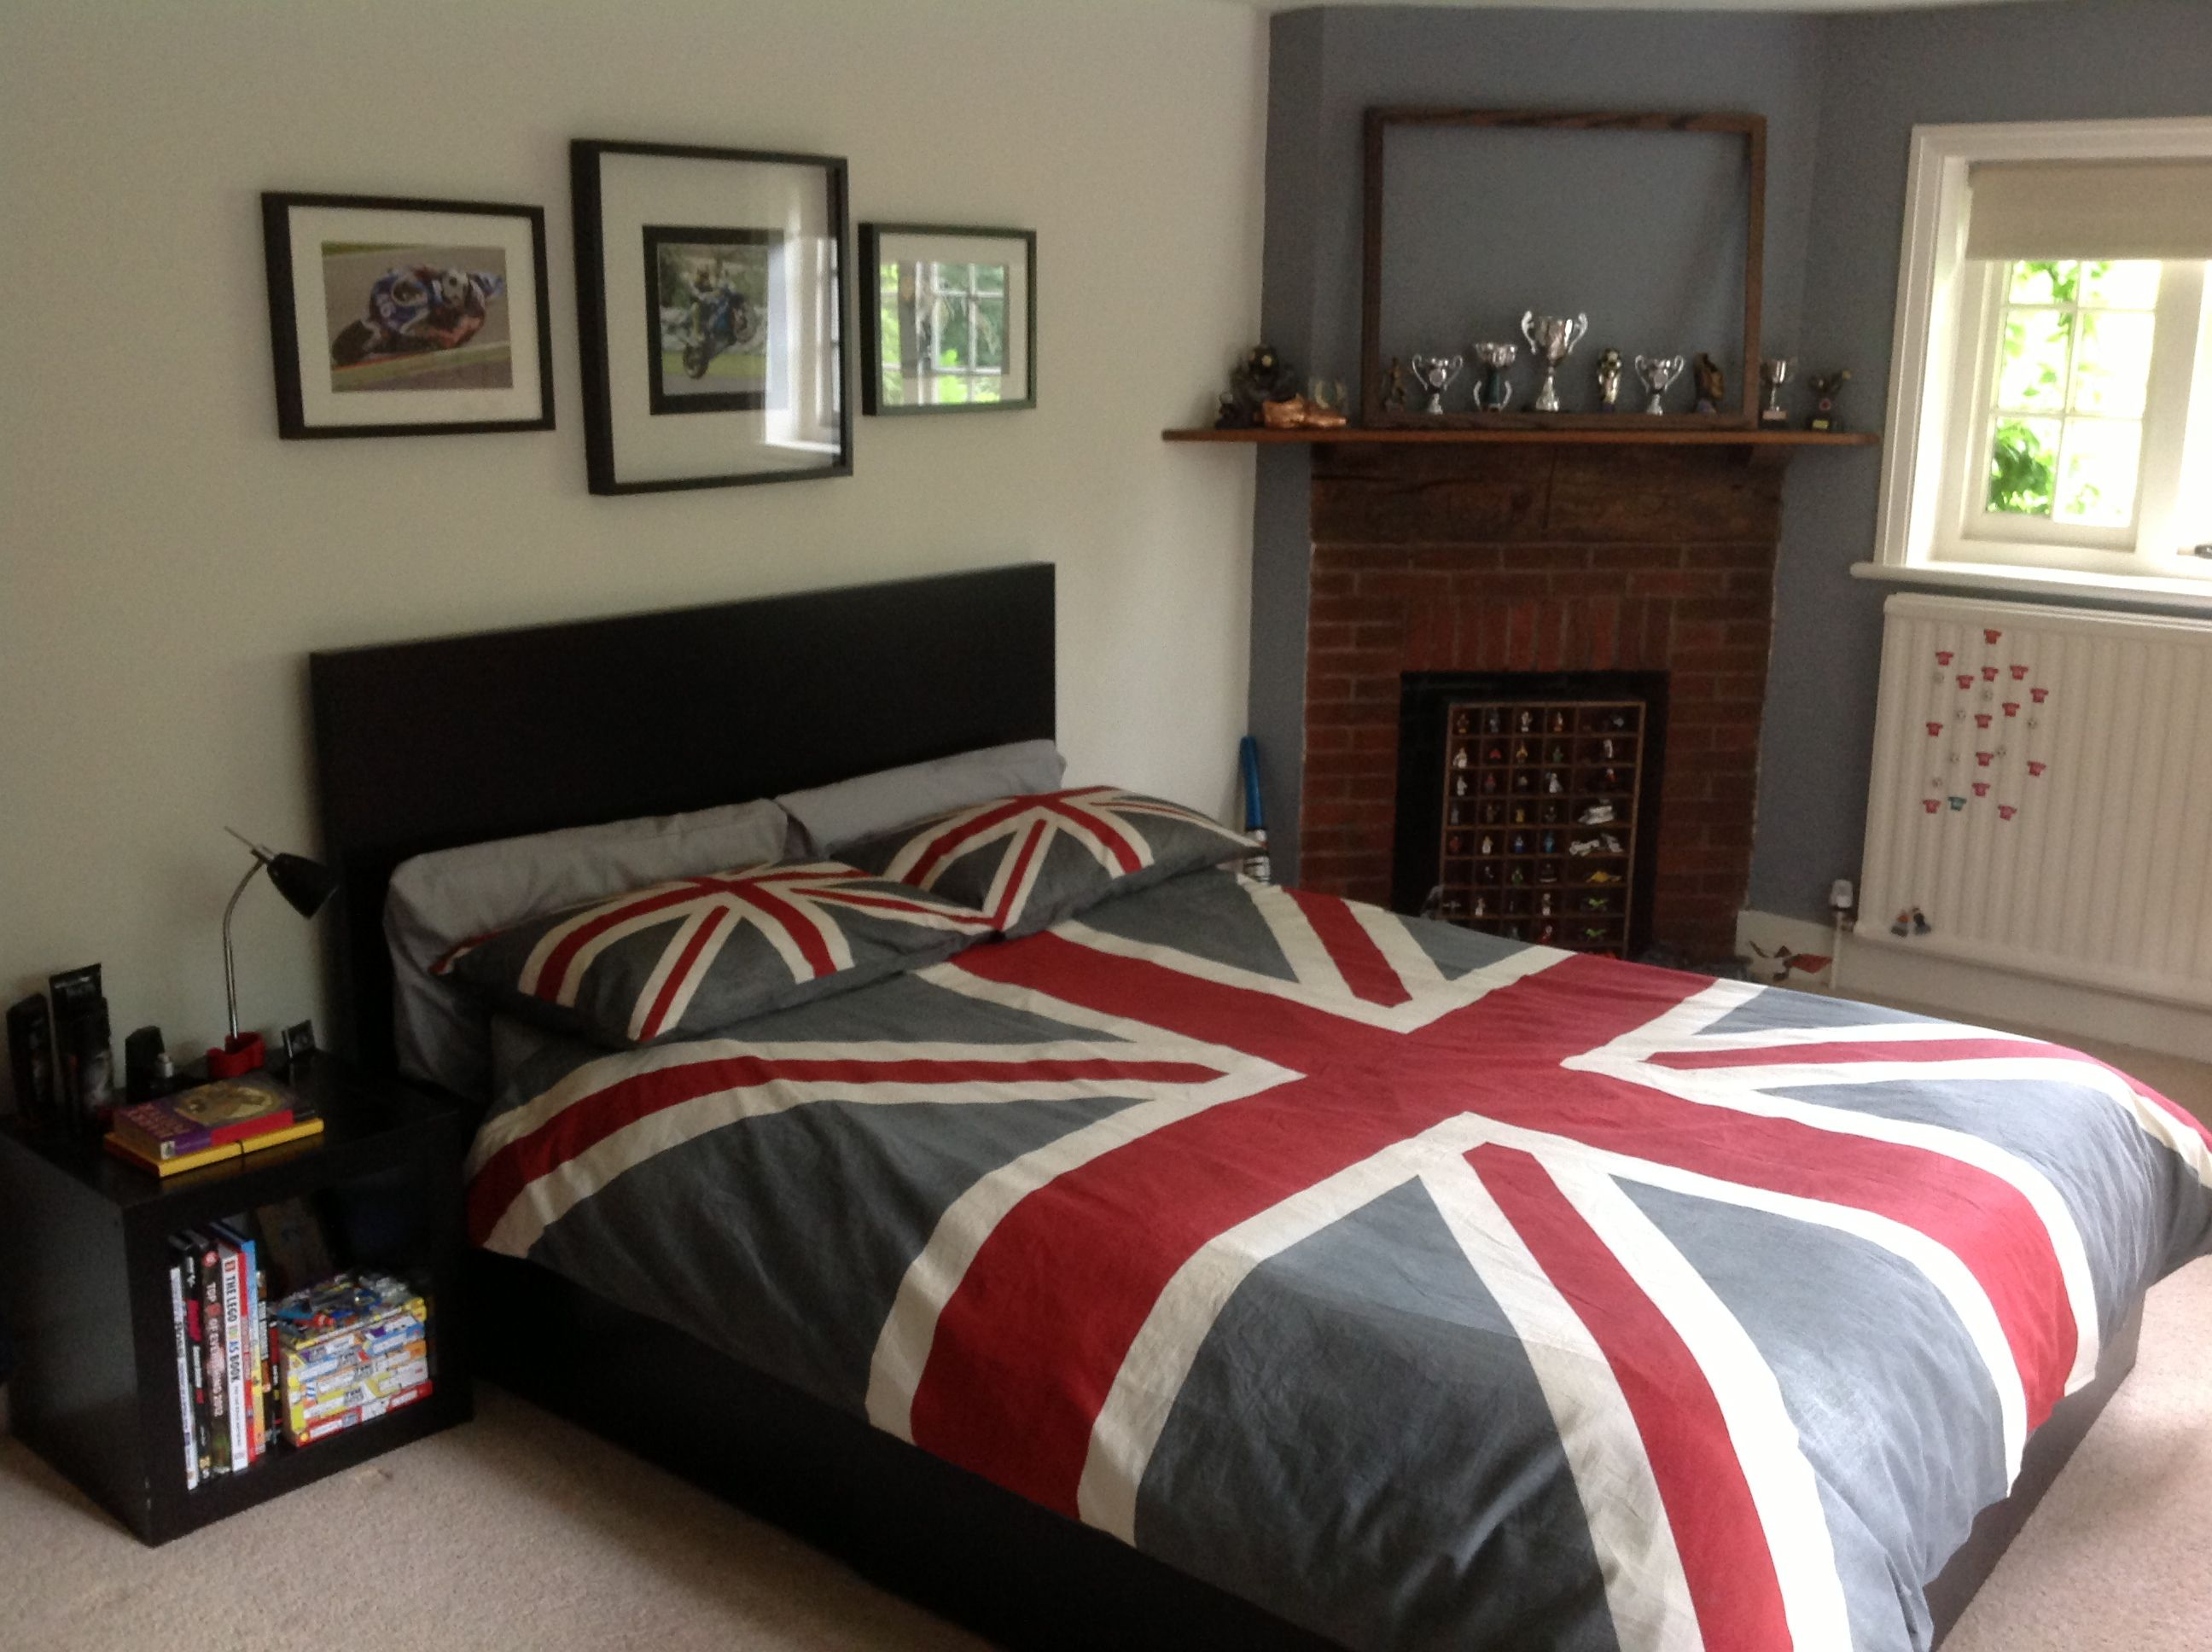 Vintage style union jack bed cover v